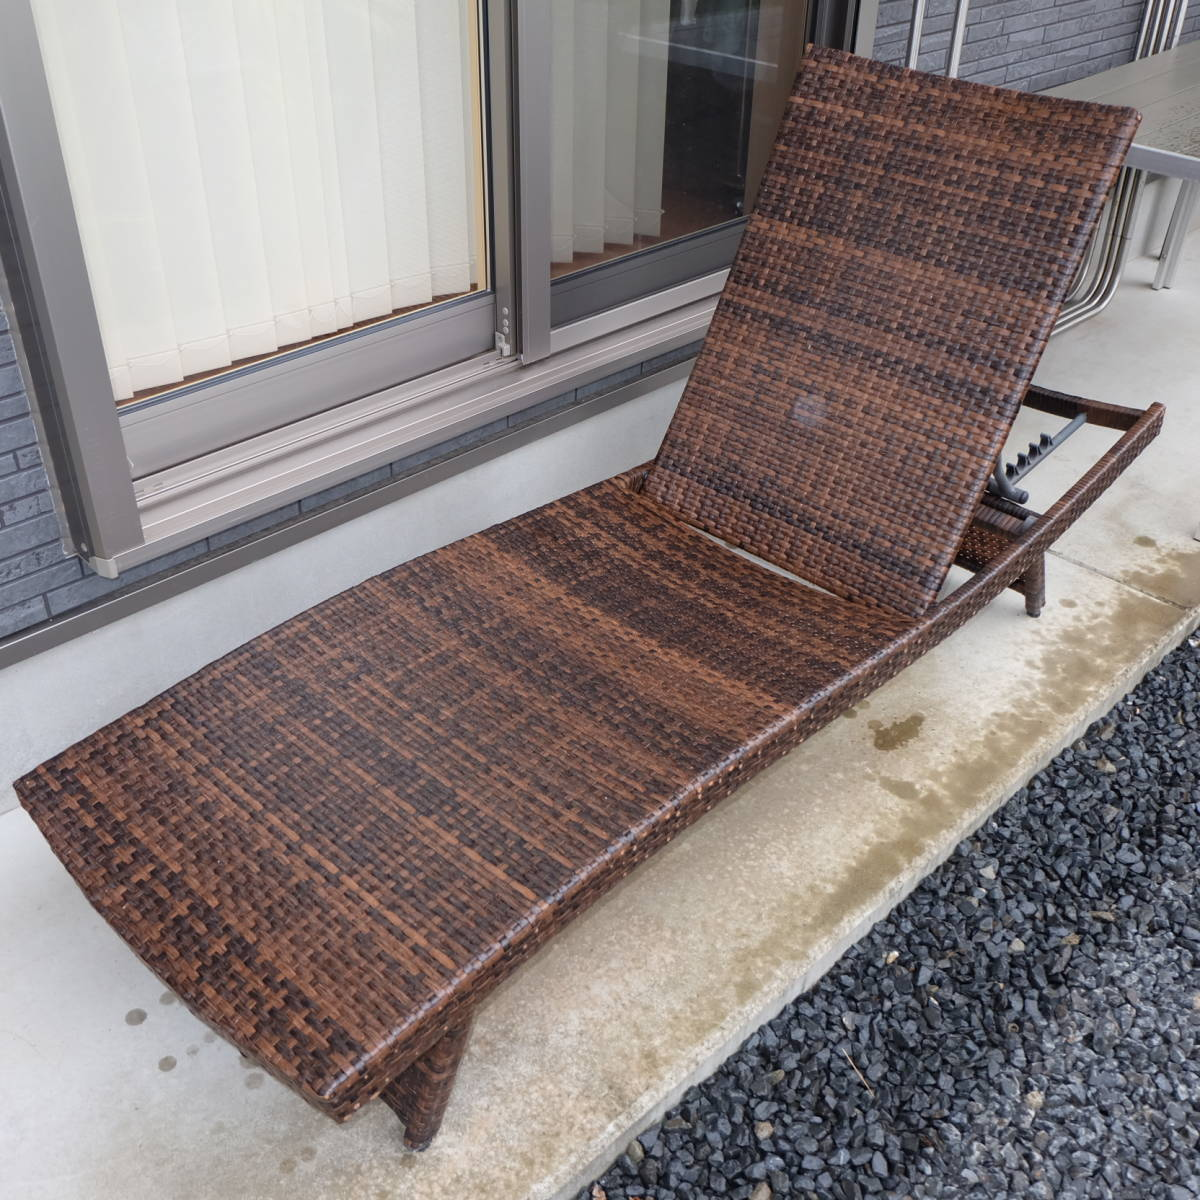 Brilliant Human Work Rattan Outdoors For Chaise Longue Daybed Beach Creativecarmelina Interior Chair Design Creativecarmelinacom